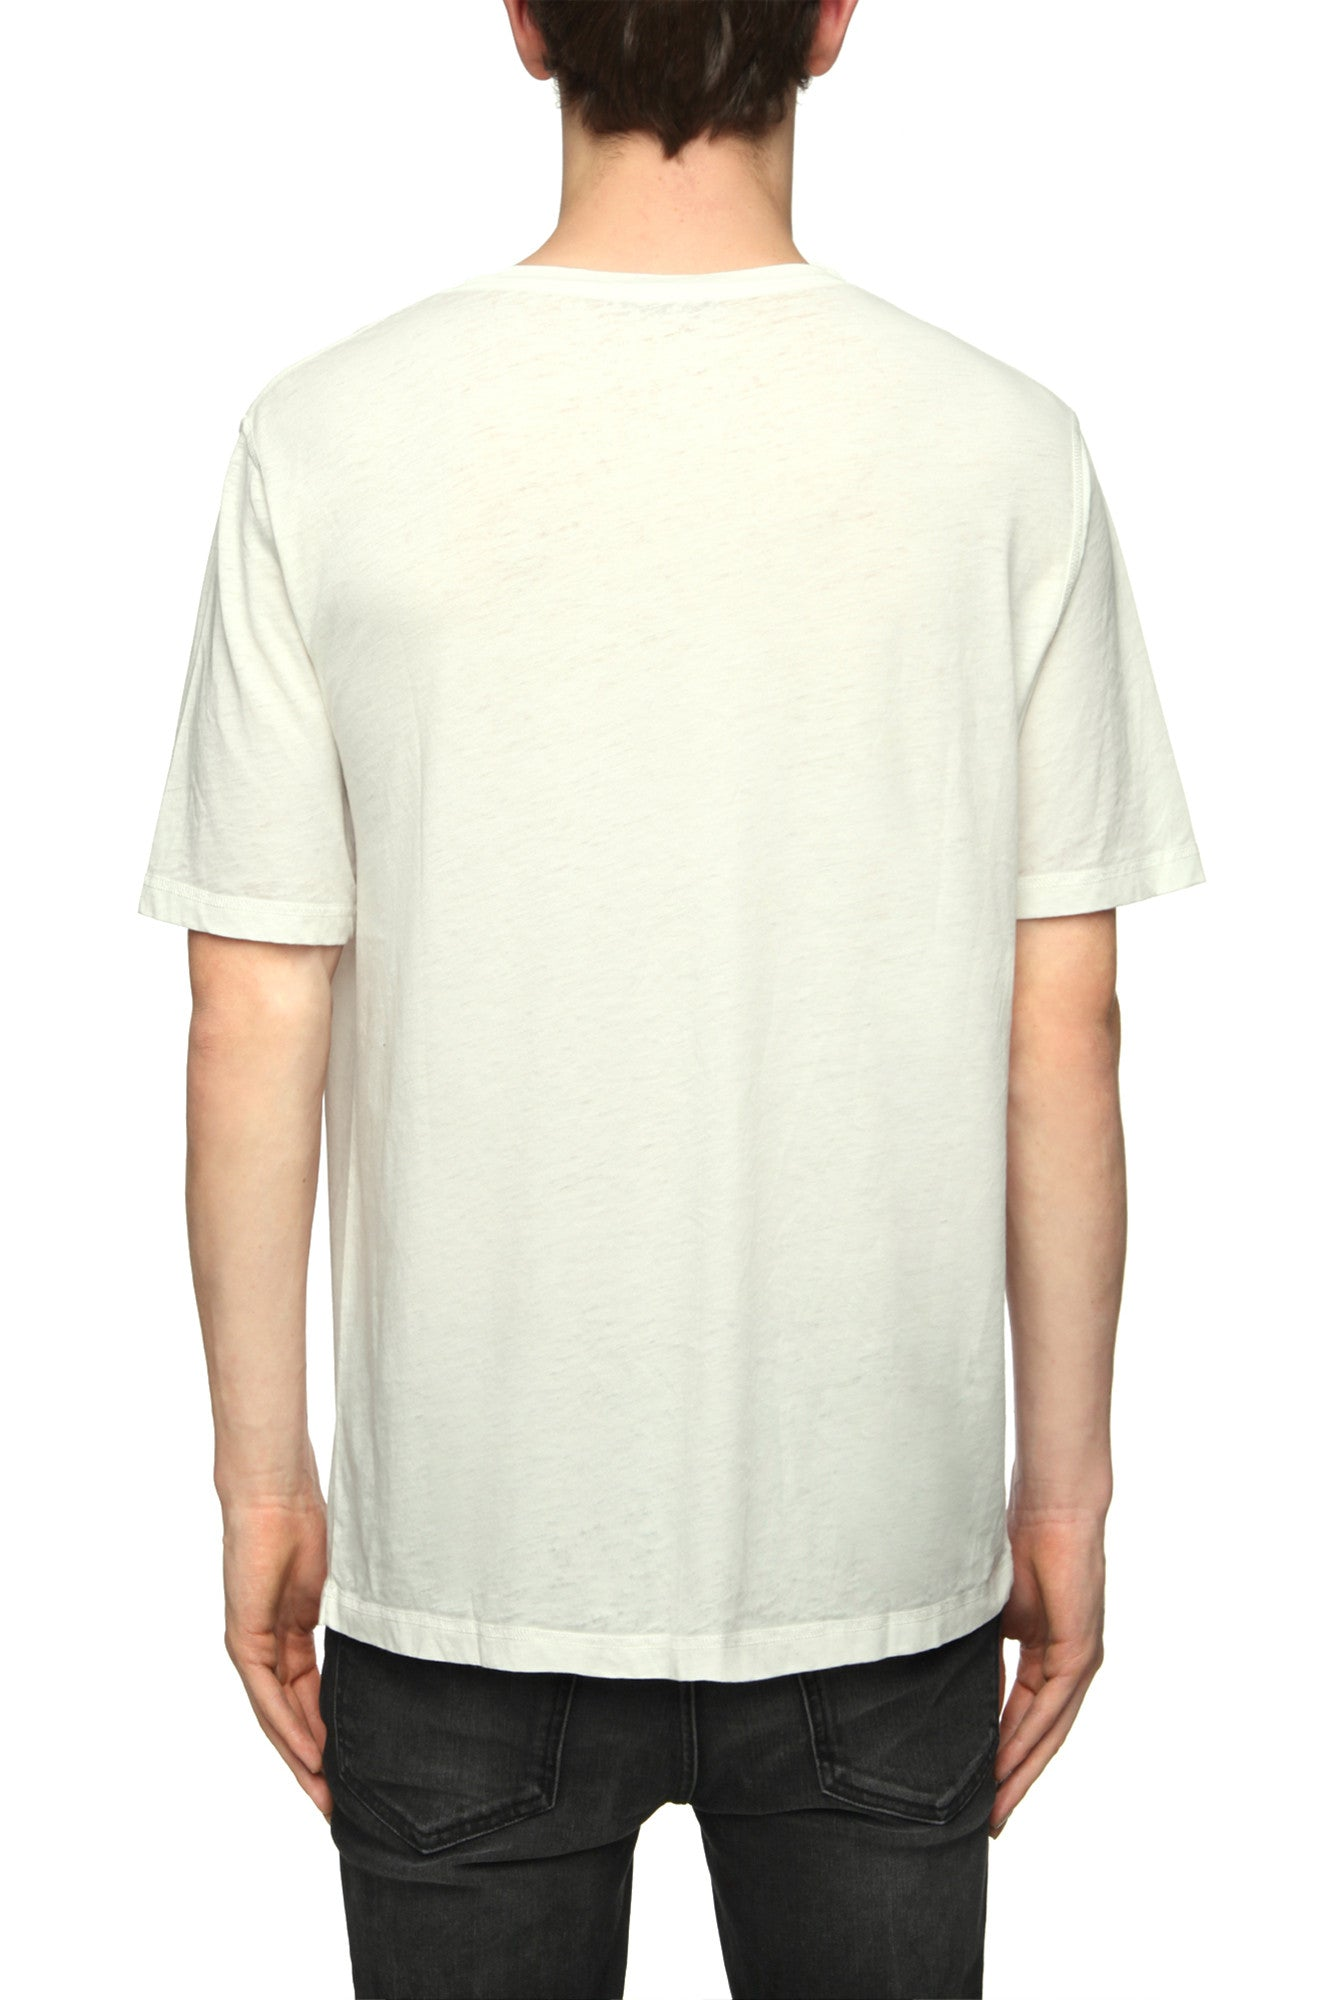 Mens T-Shirt 99 Ash White